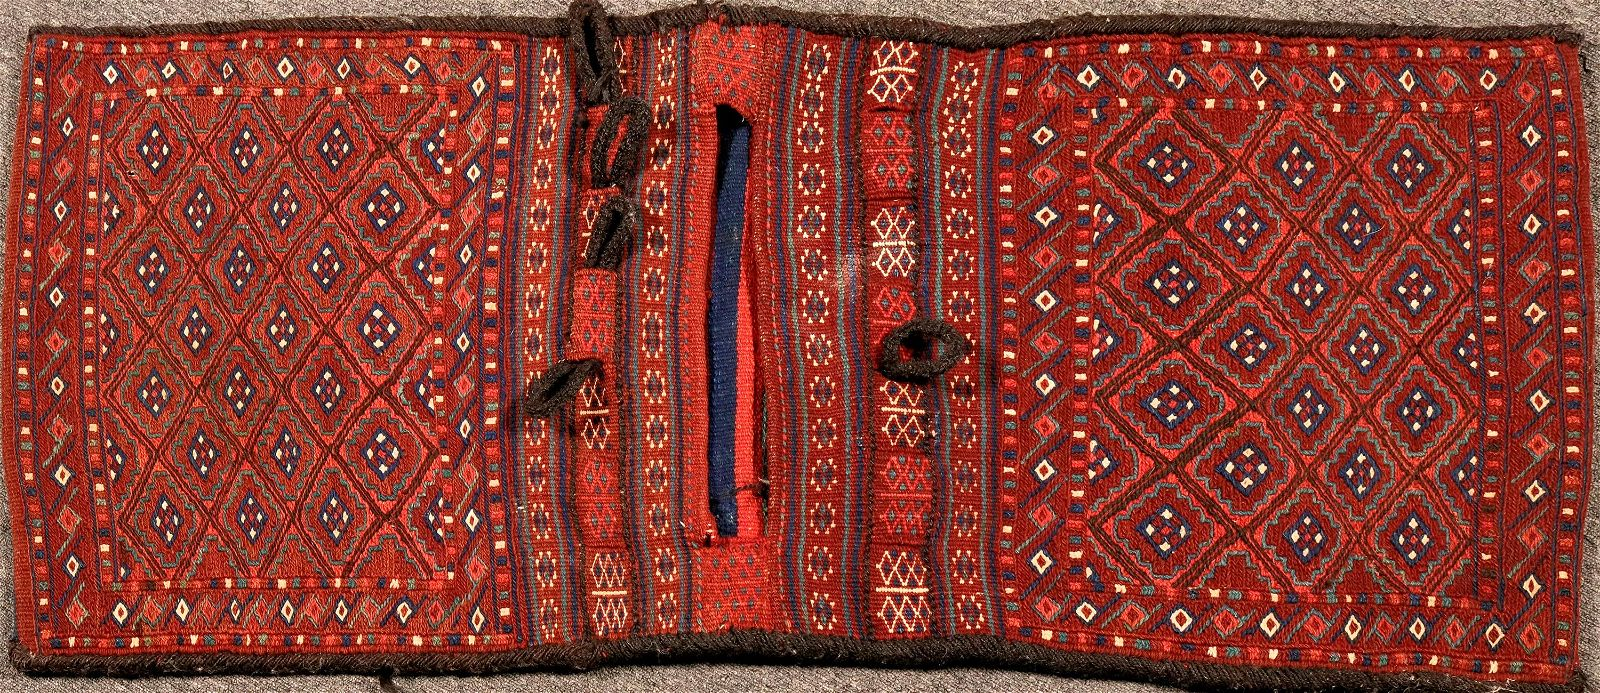 Turkish/Afghan  Double Sided Wool Woven Saddle Bag